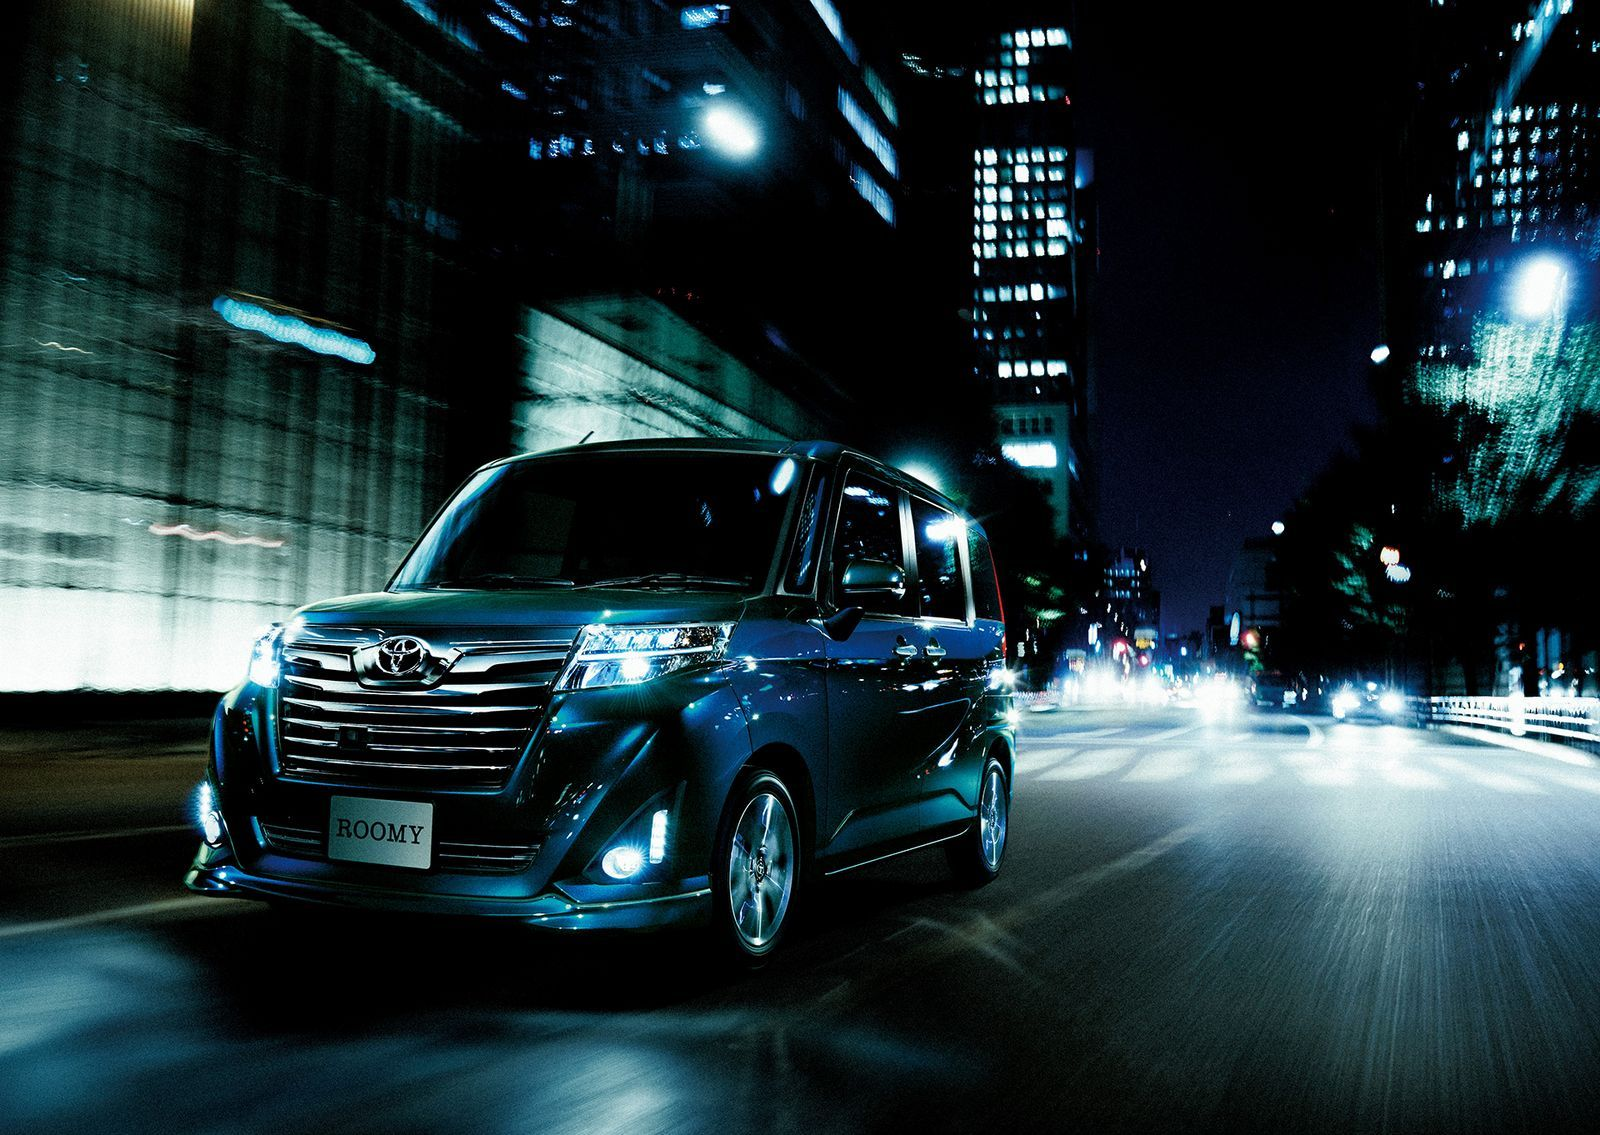 Toyota roomy and tank minivans launch in japan